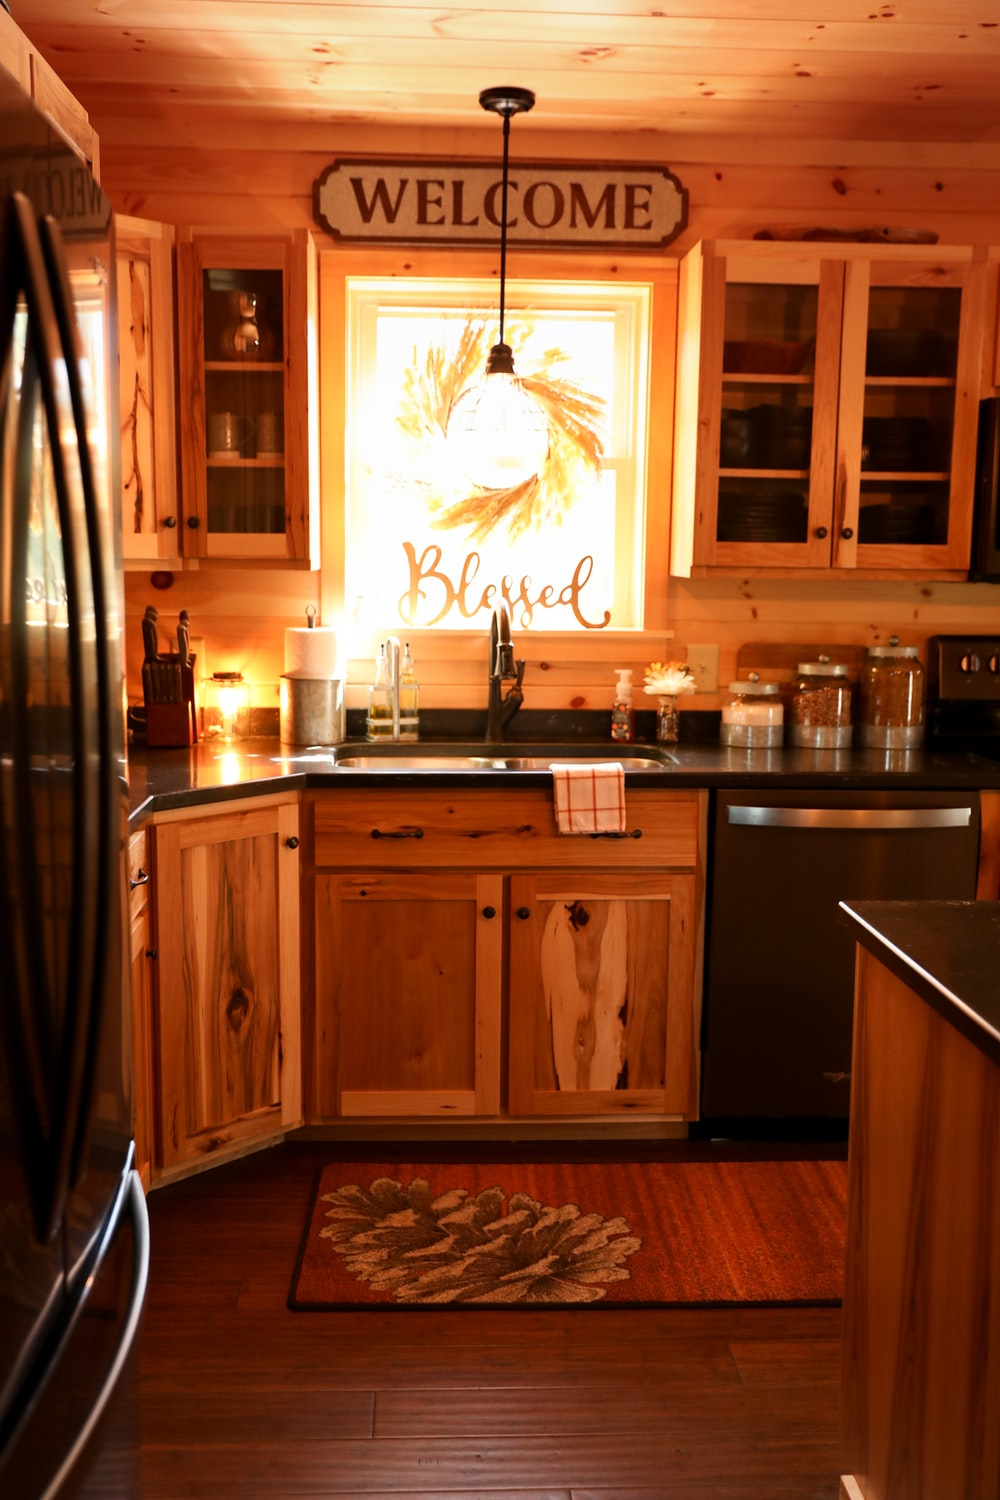 brown wooden kitchen cabinet with white wooden cabinet